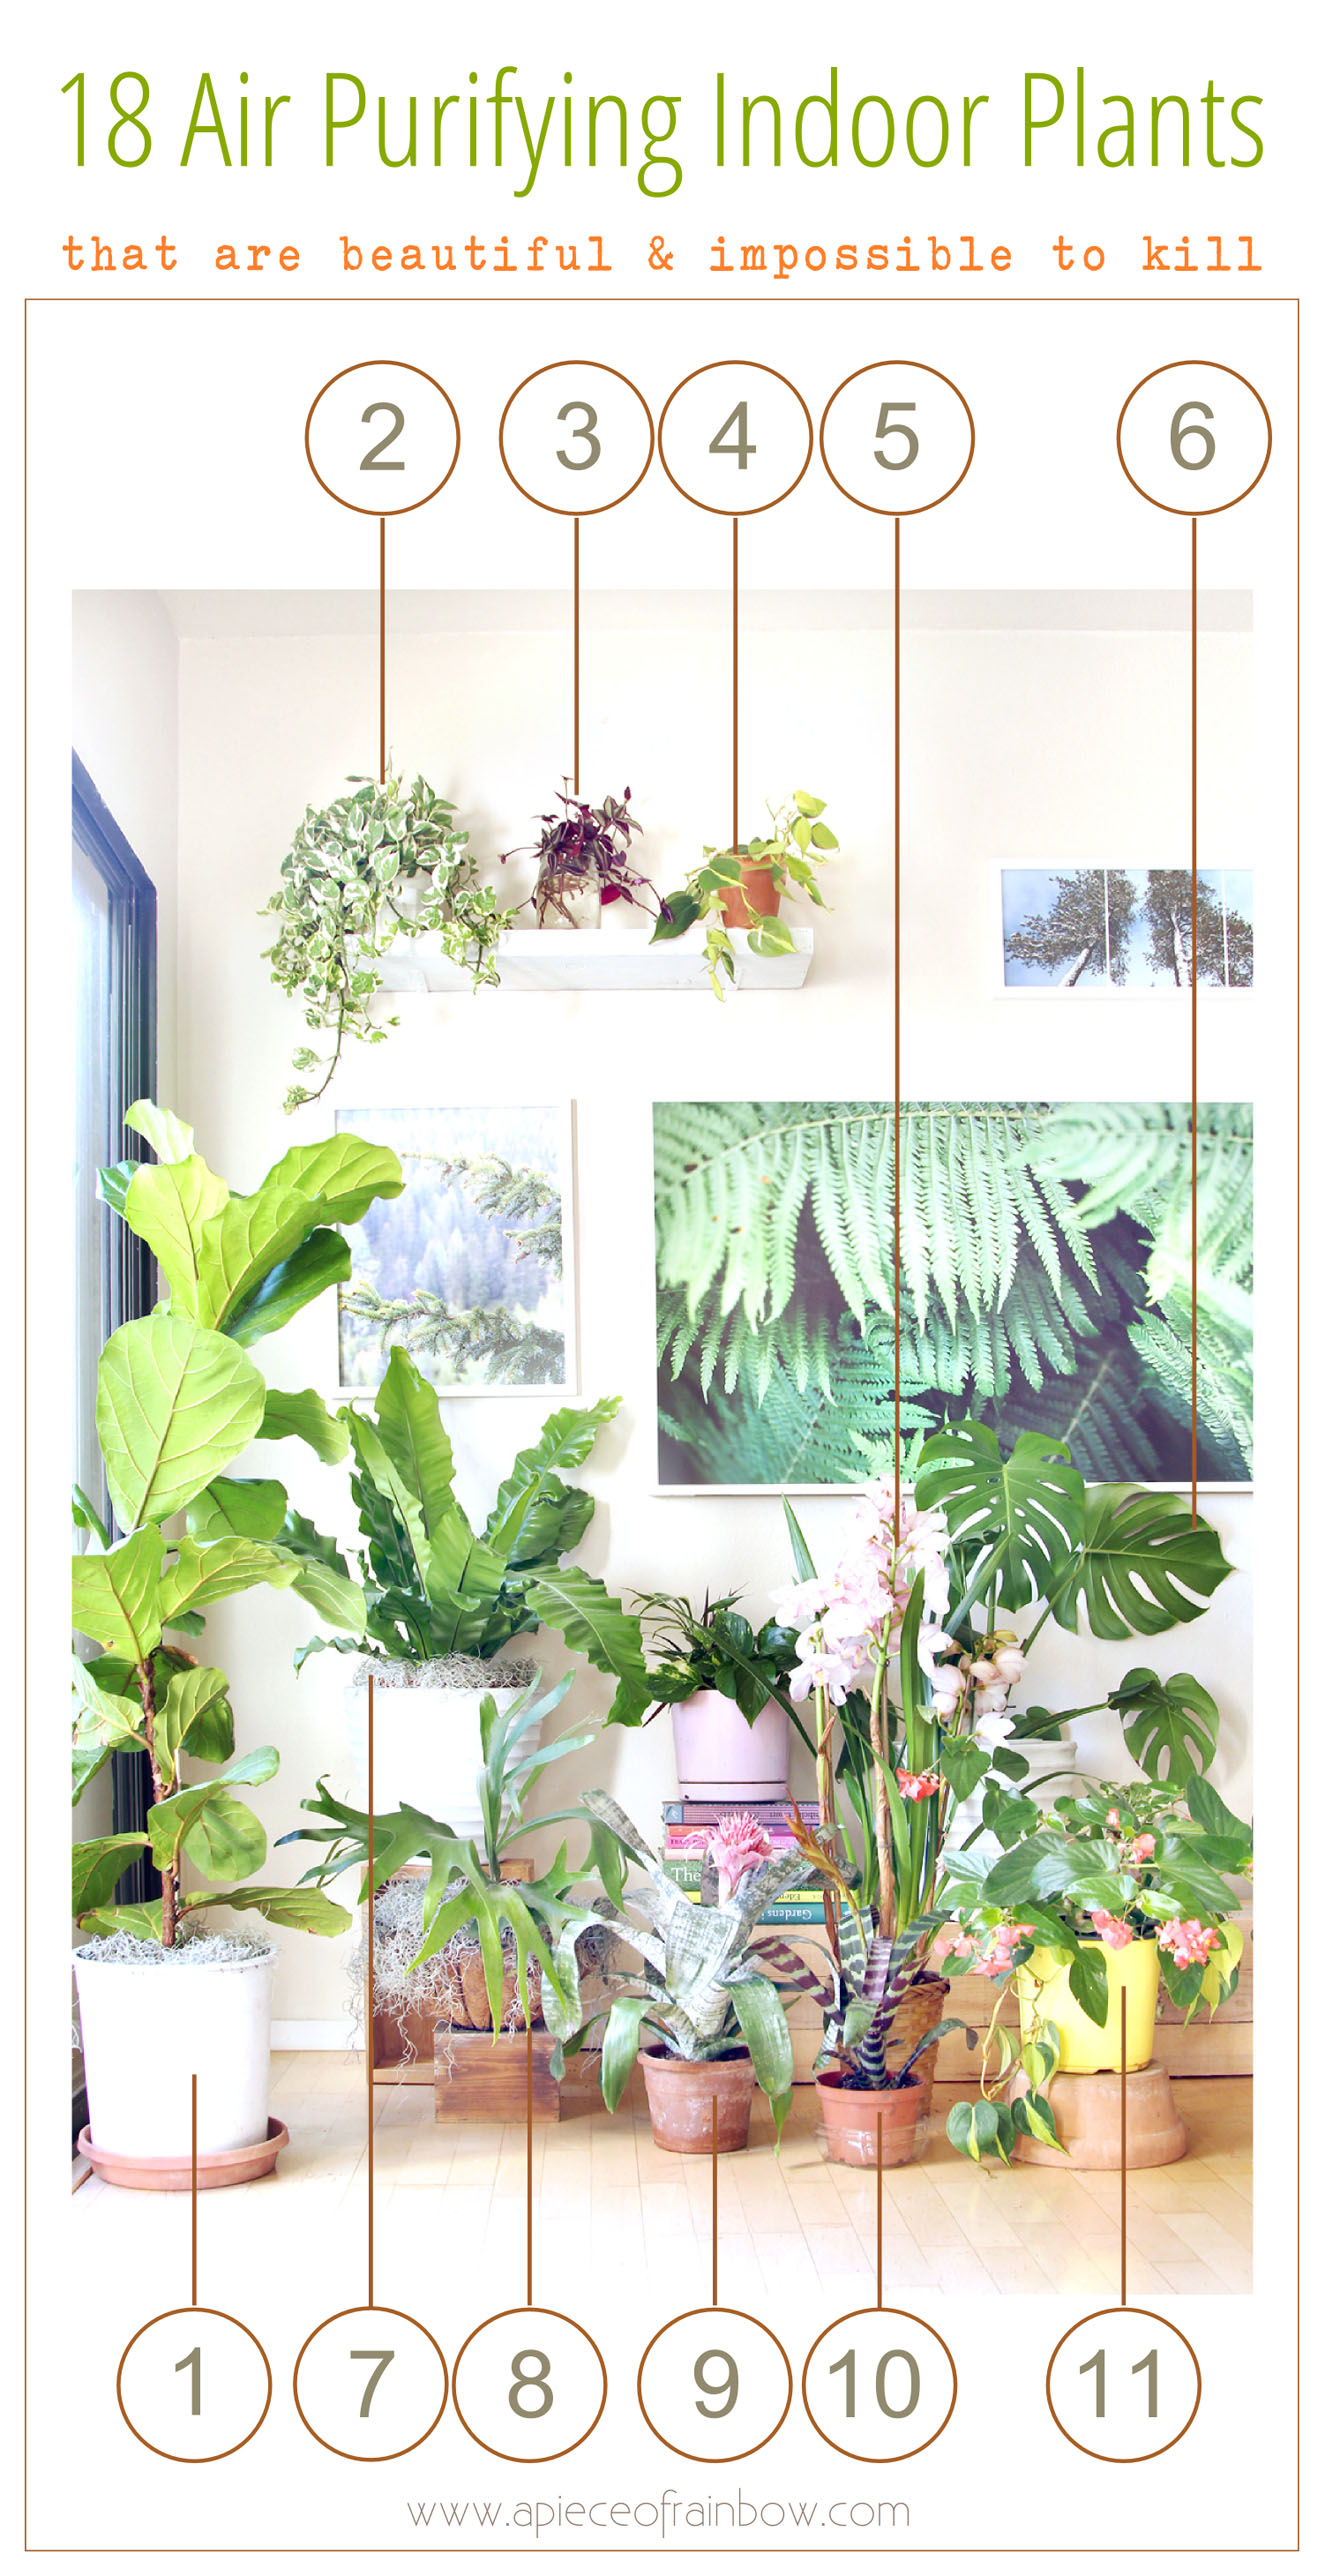 18 Most Beautiful Indoor Plants ( & 5 Easy Care Tips! ) - A Piece ...